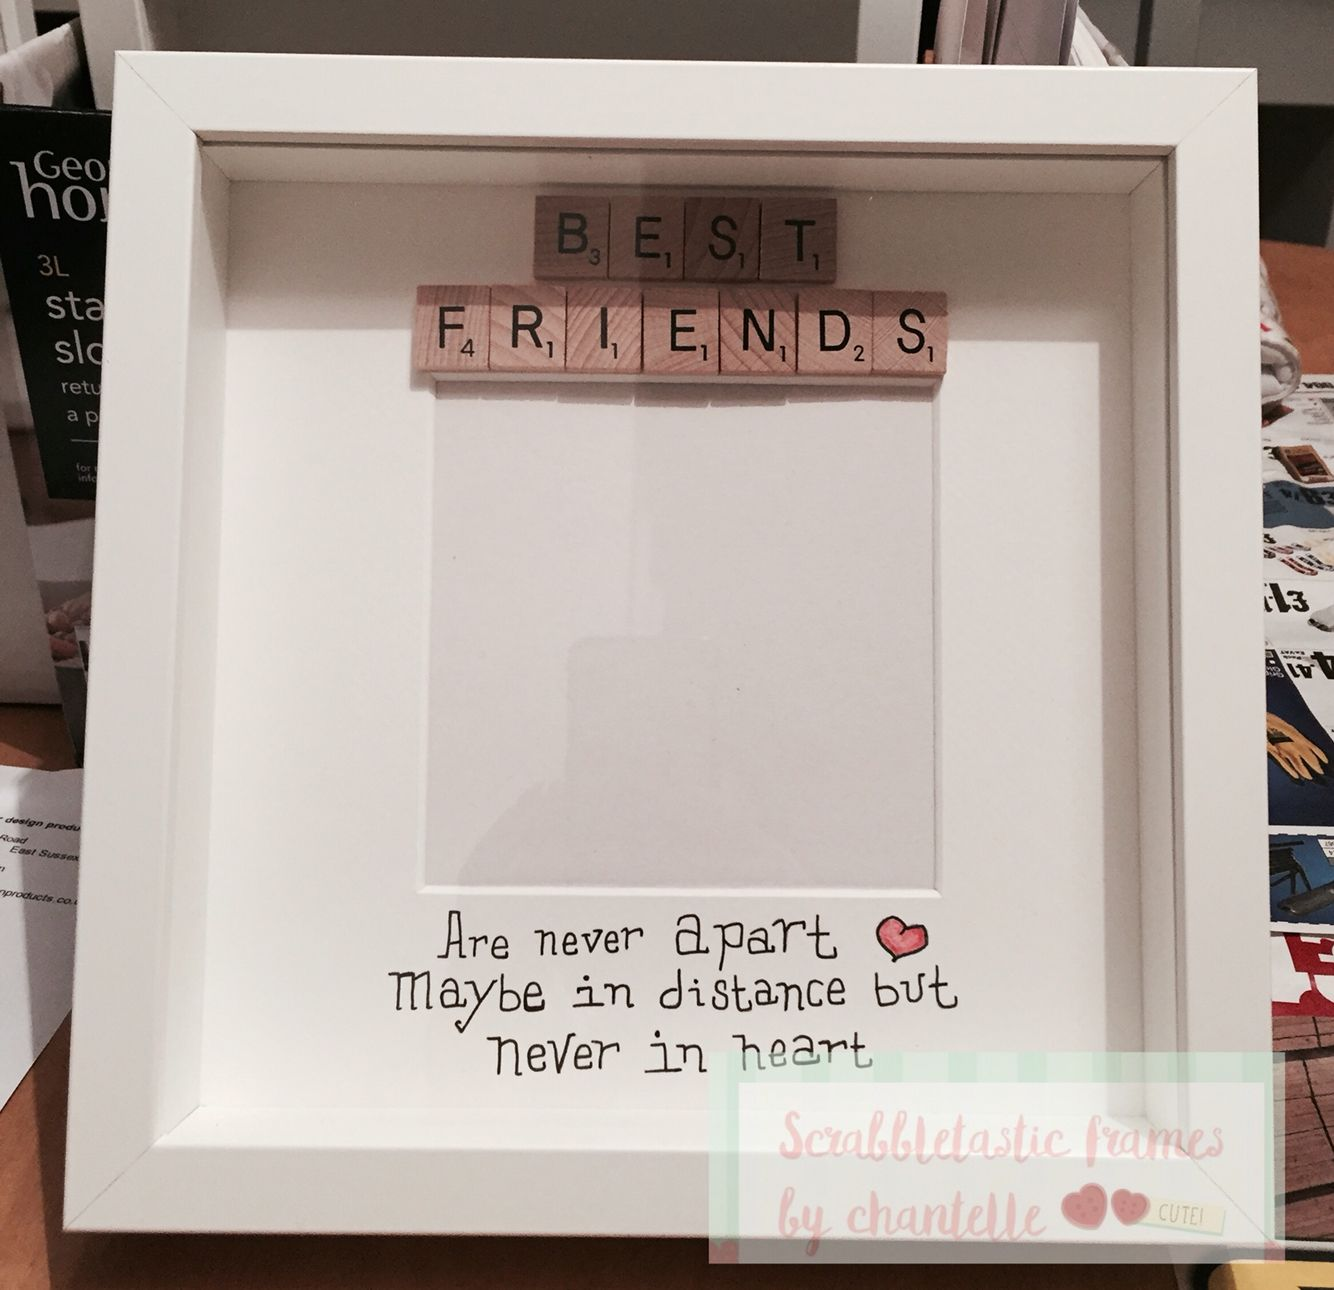 Best friends frame | Need to do. | Pinterest | Scrabble frame and ...